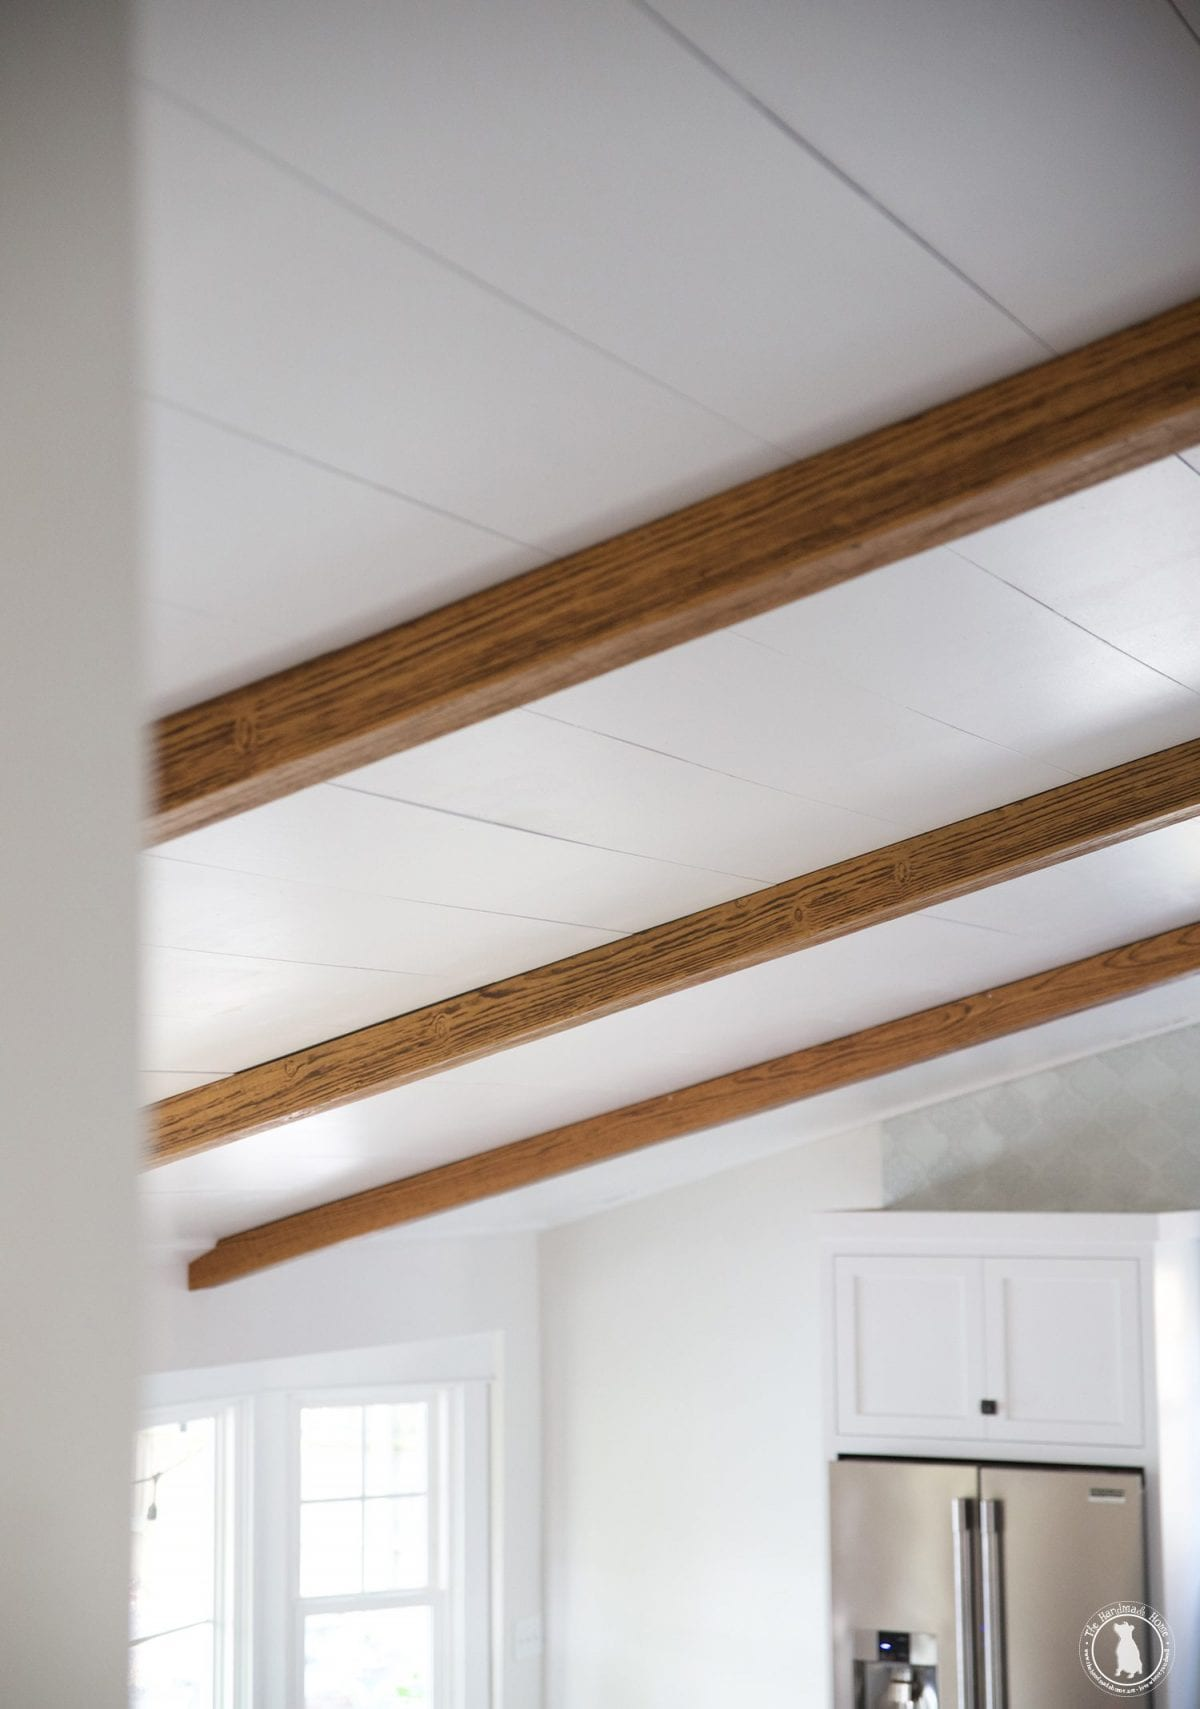 how to shiplap your ceilings - plank your ceilings